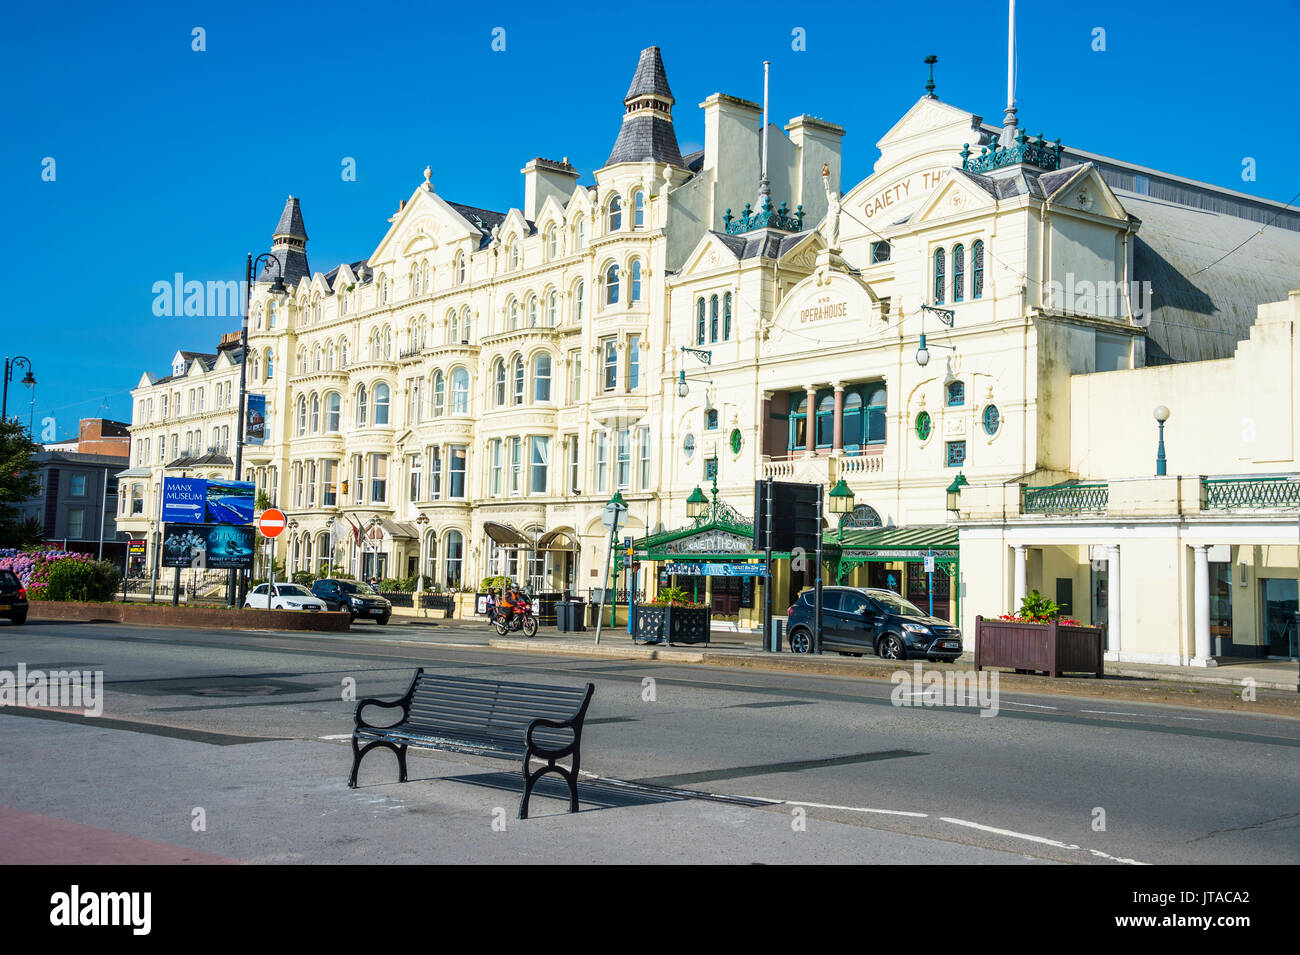 Palacial houses in Douglas, Isle of Man, crown dependency of the United Kingdom, Europe - Stock Image